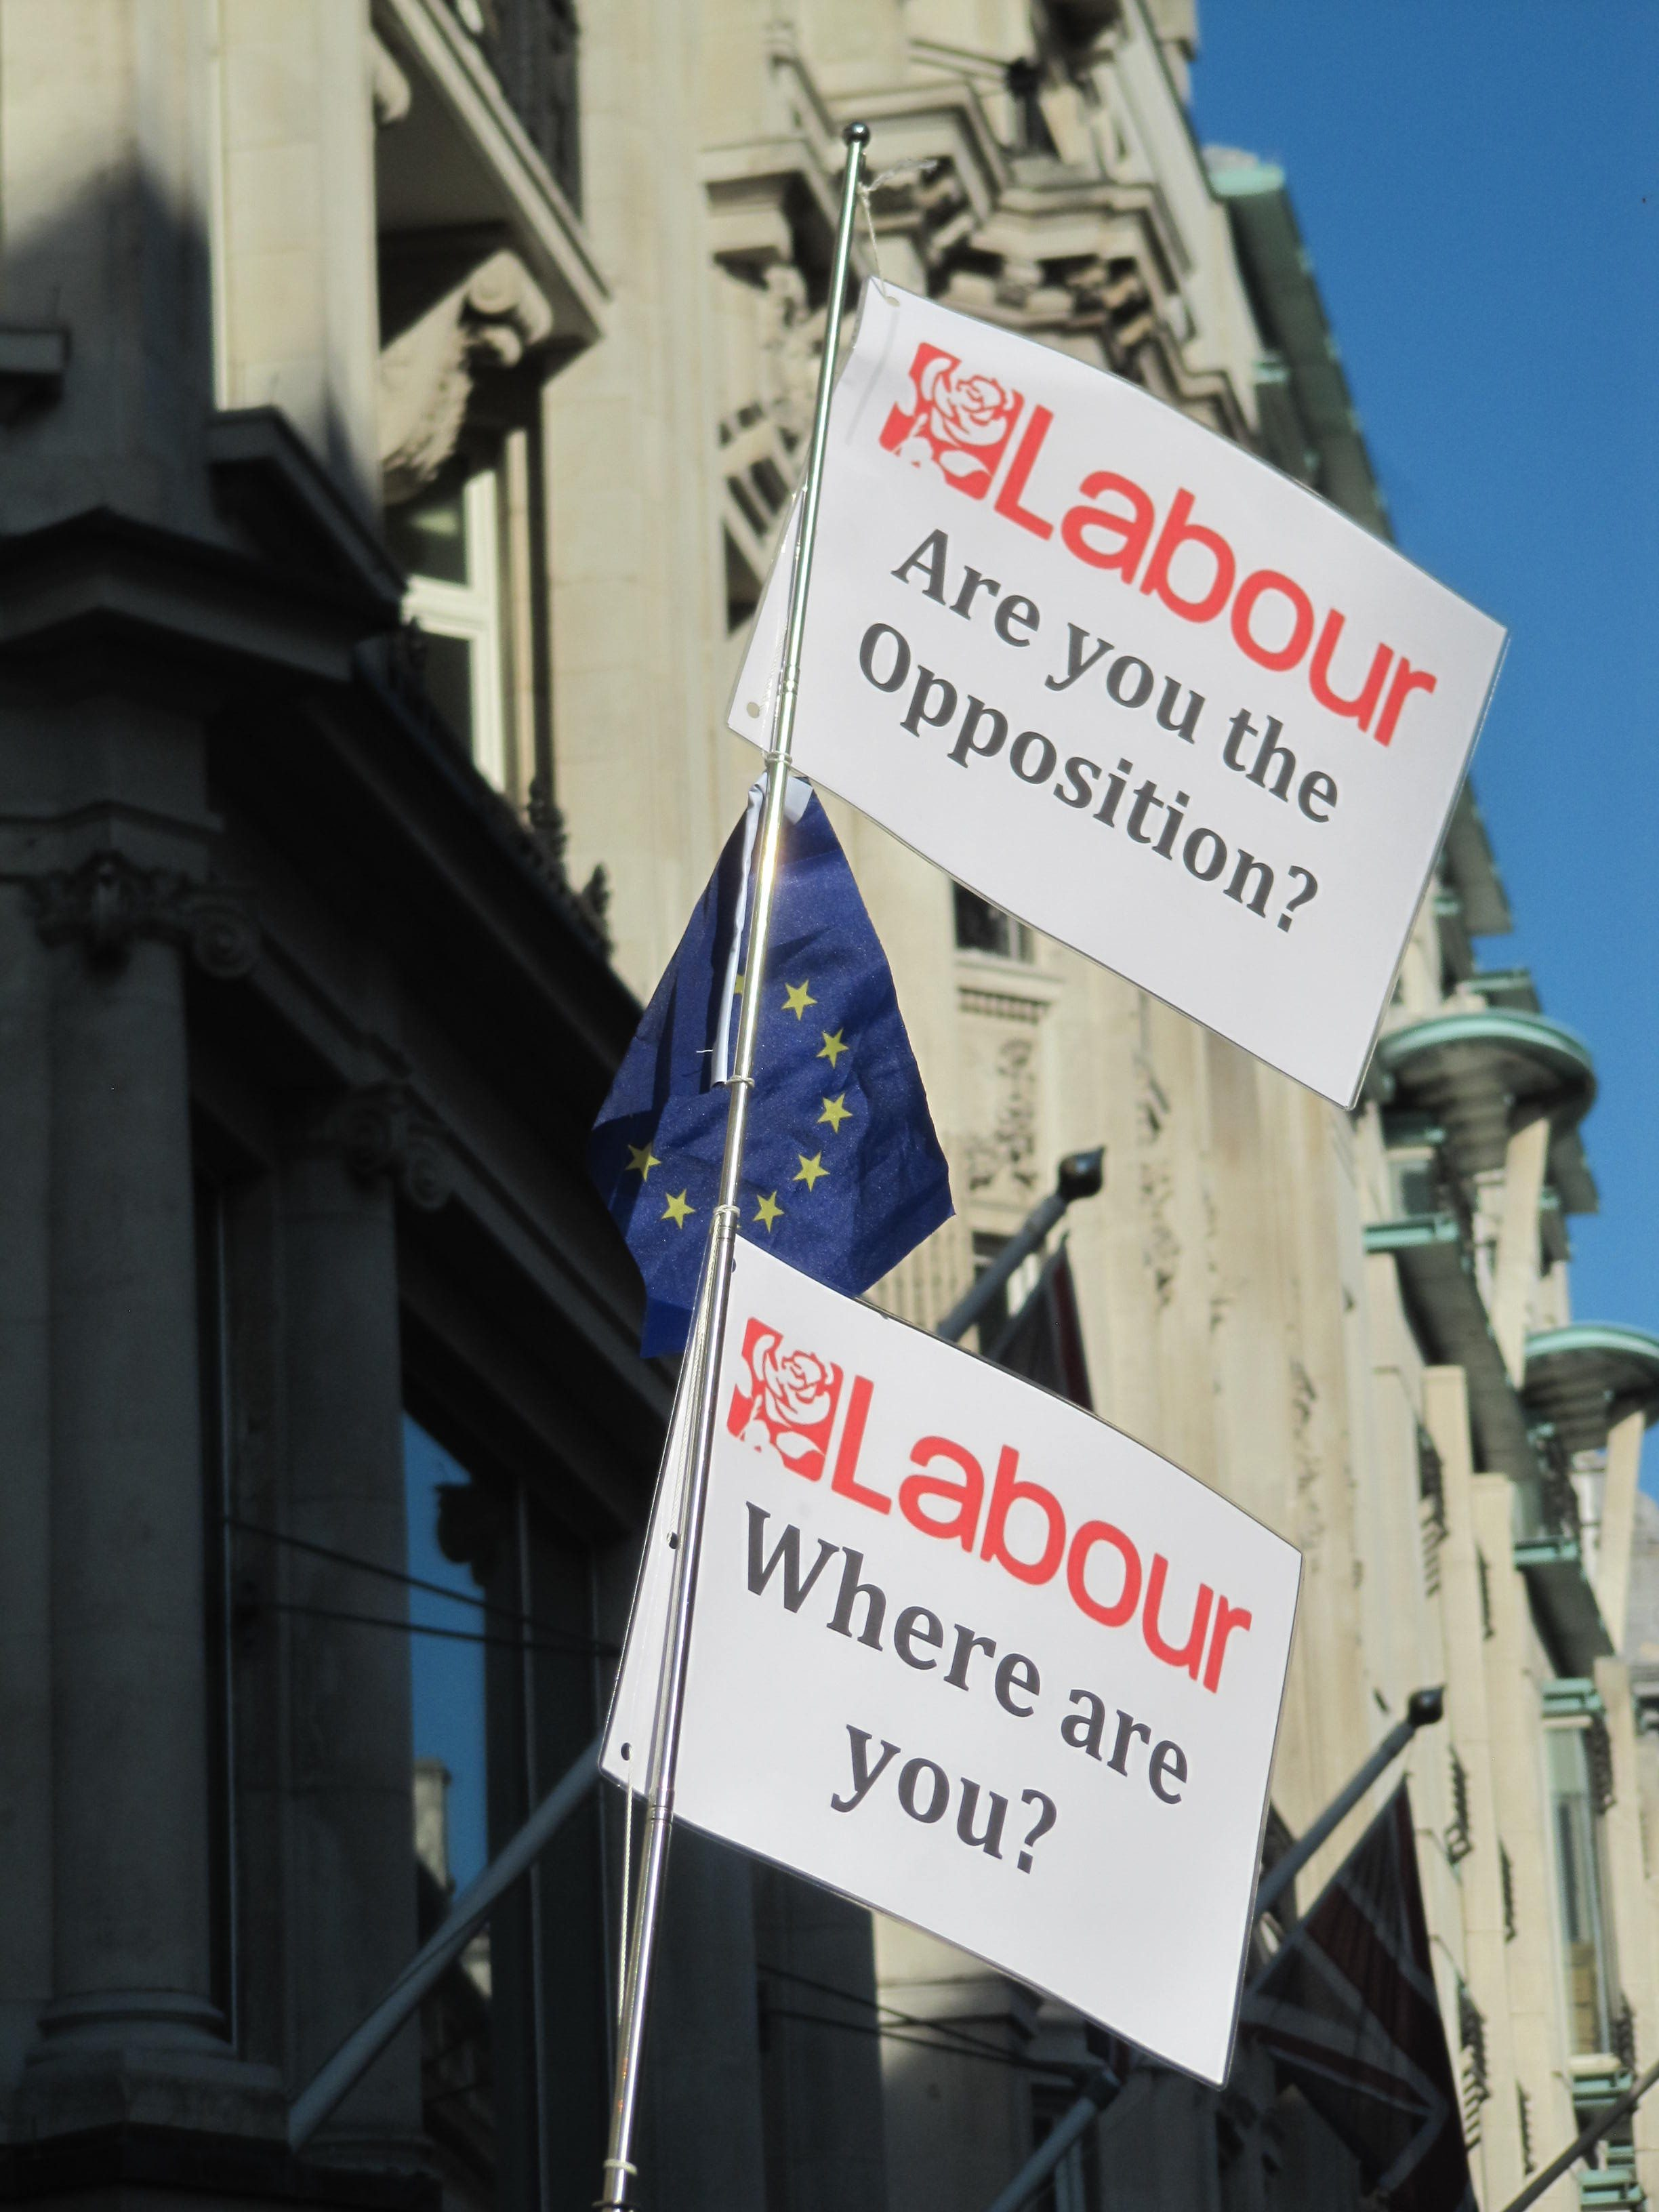 Labour Where are? Are you an opposition